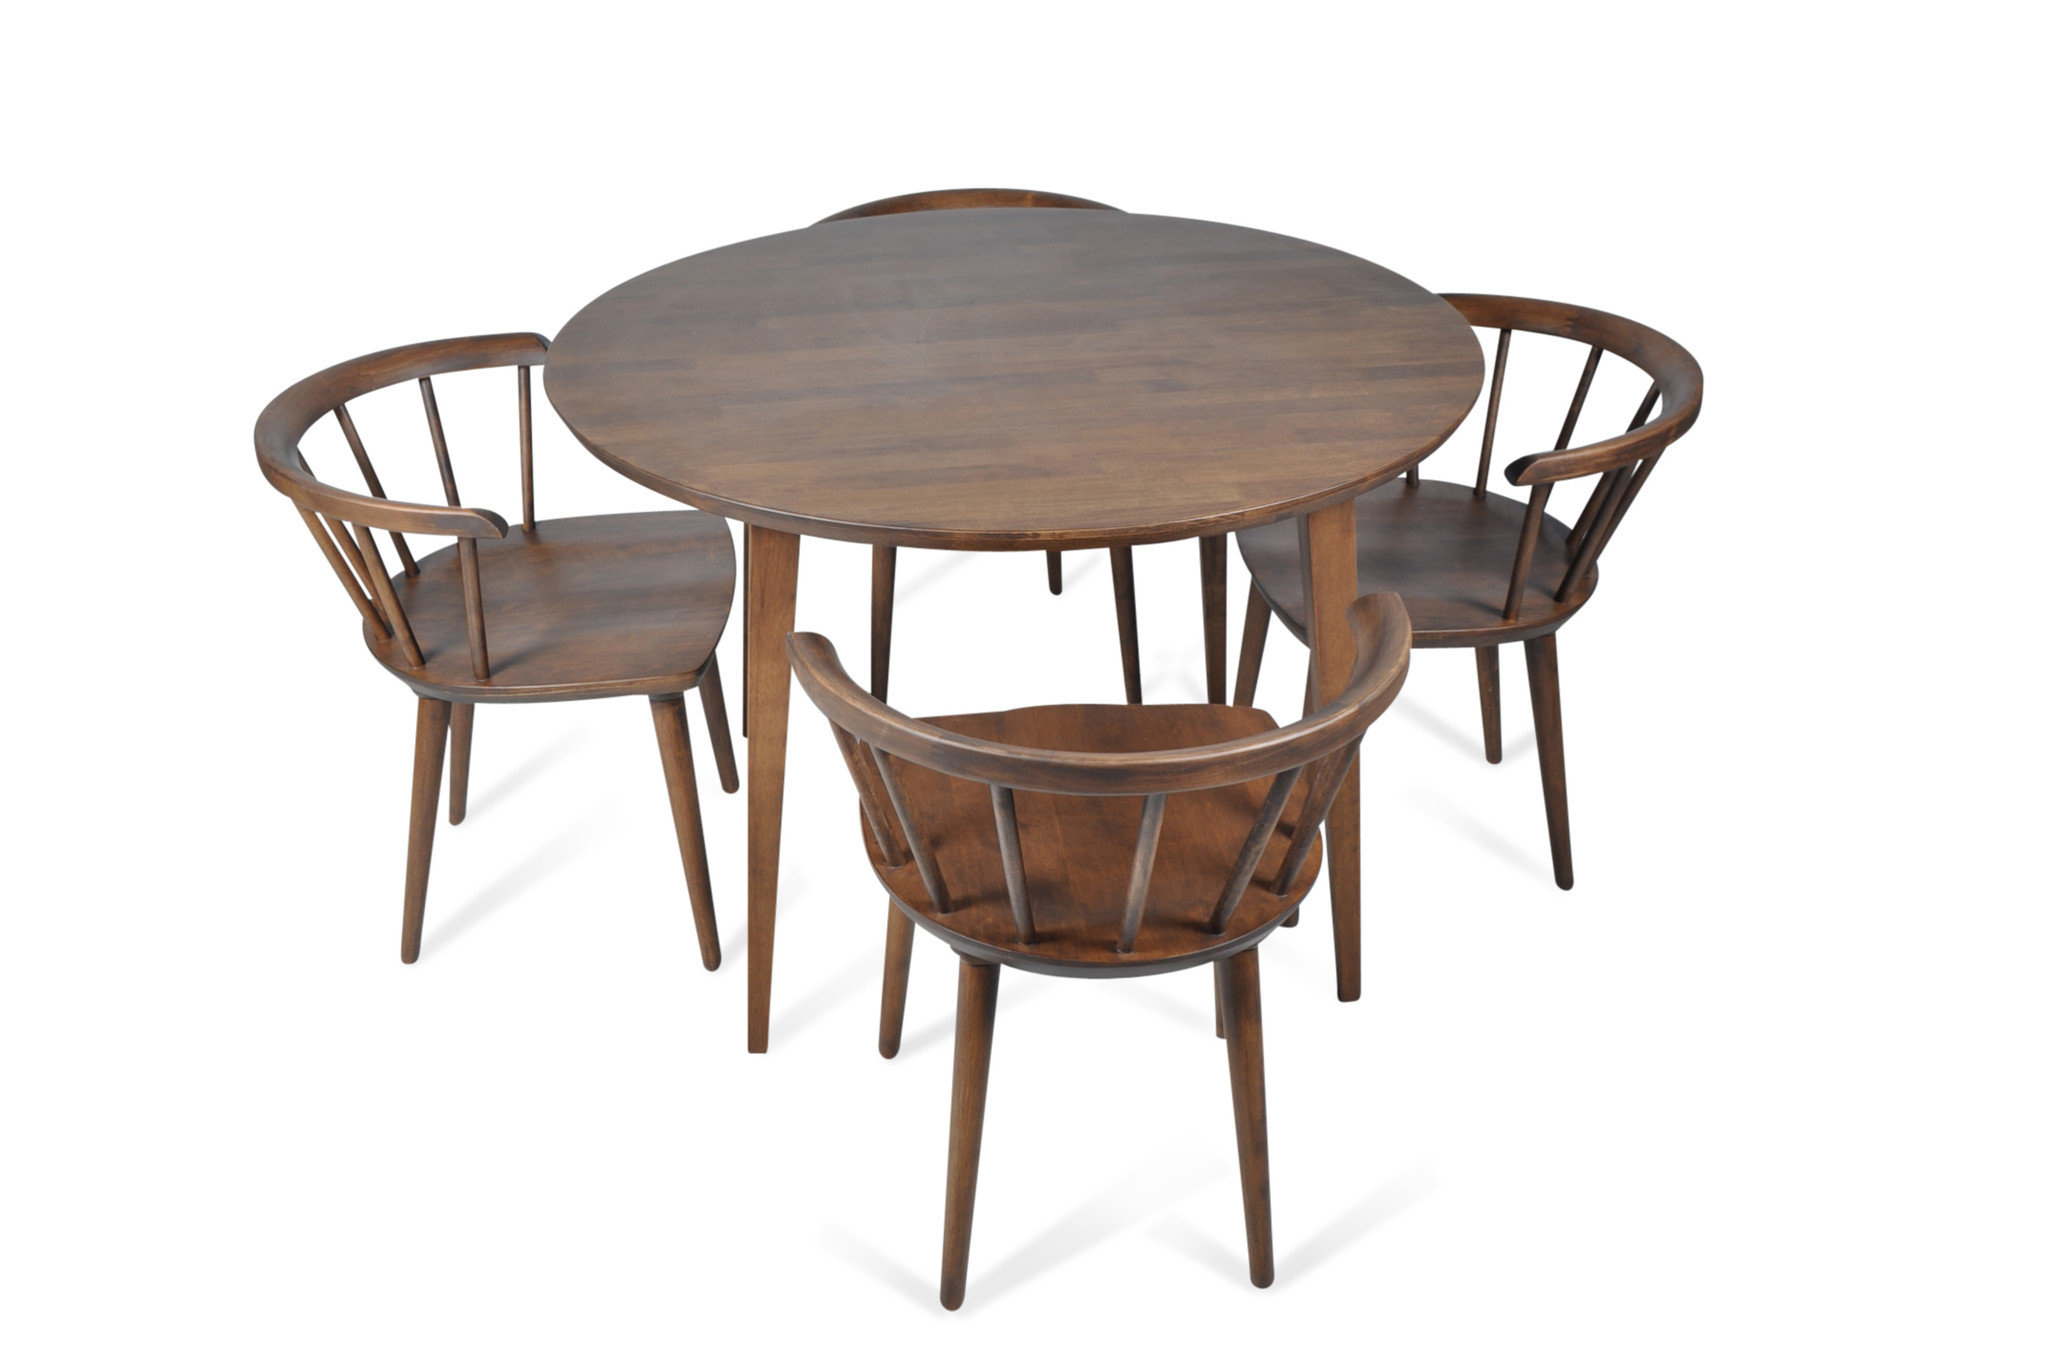 Burgan 5 Piece Solid Wood Breakfast Nook Dining Set & Reviews Throughout Famous 5 Piece Breakfast Nook Dining Sets (View 13 of 25)